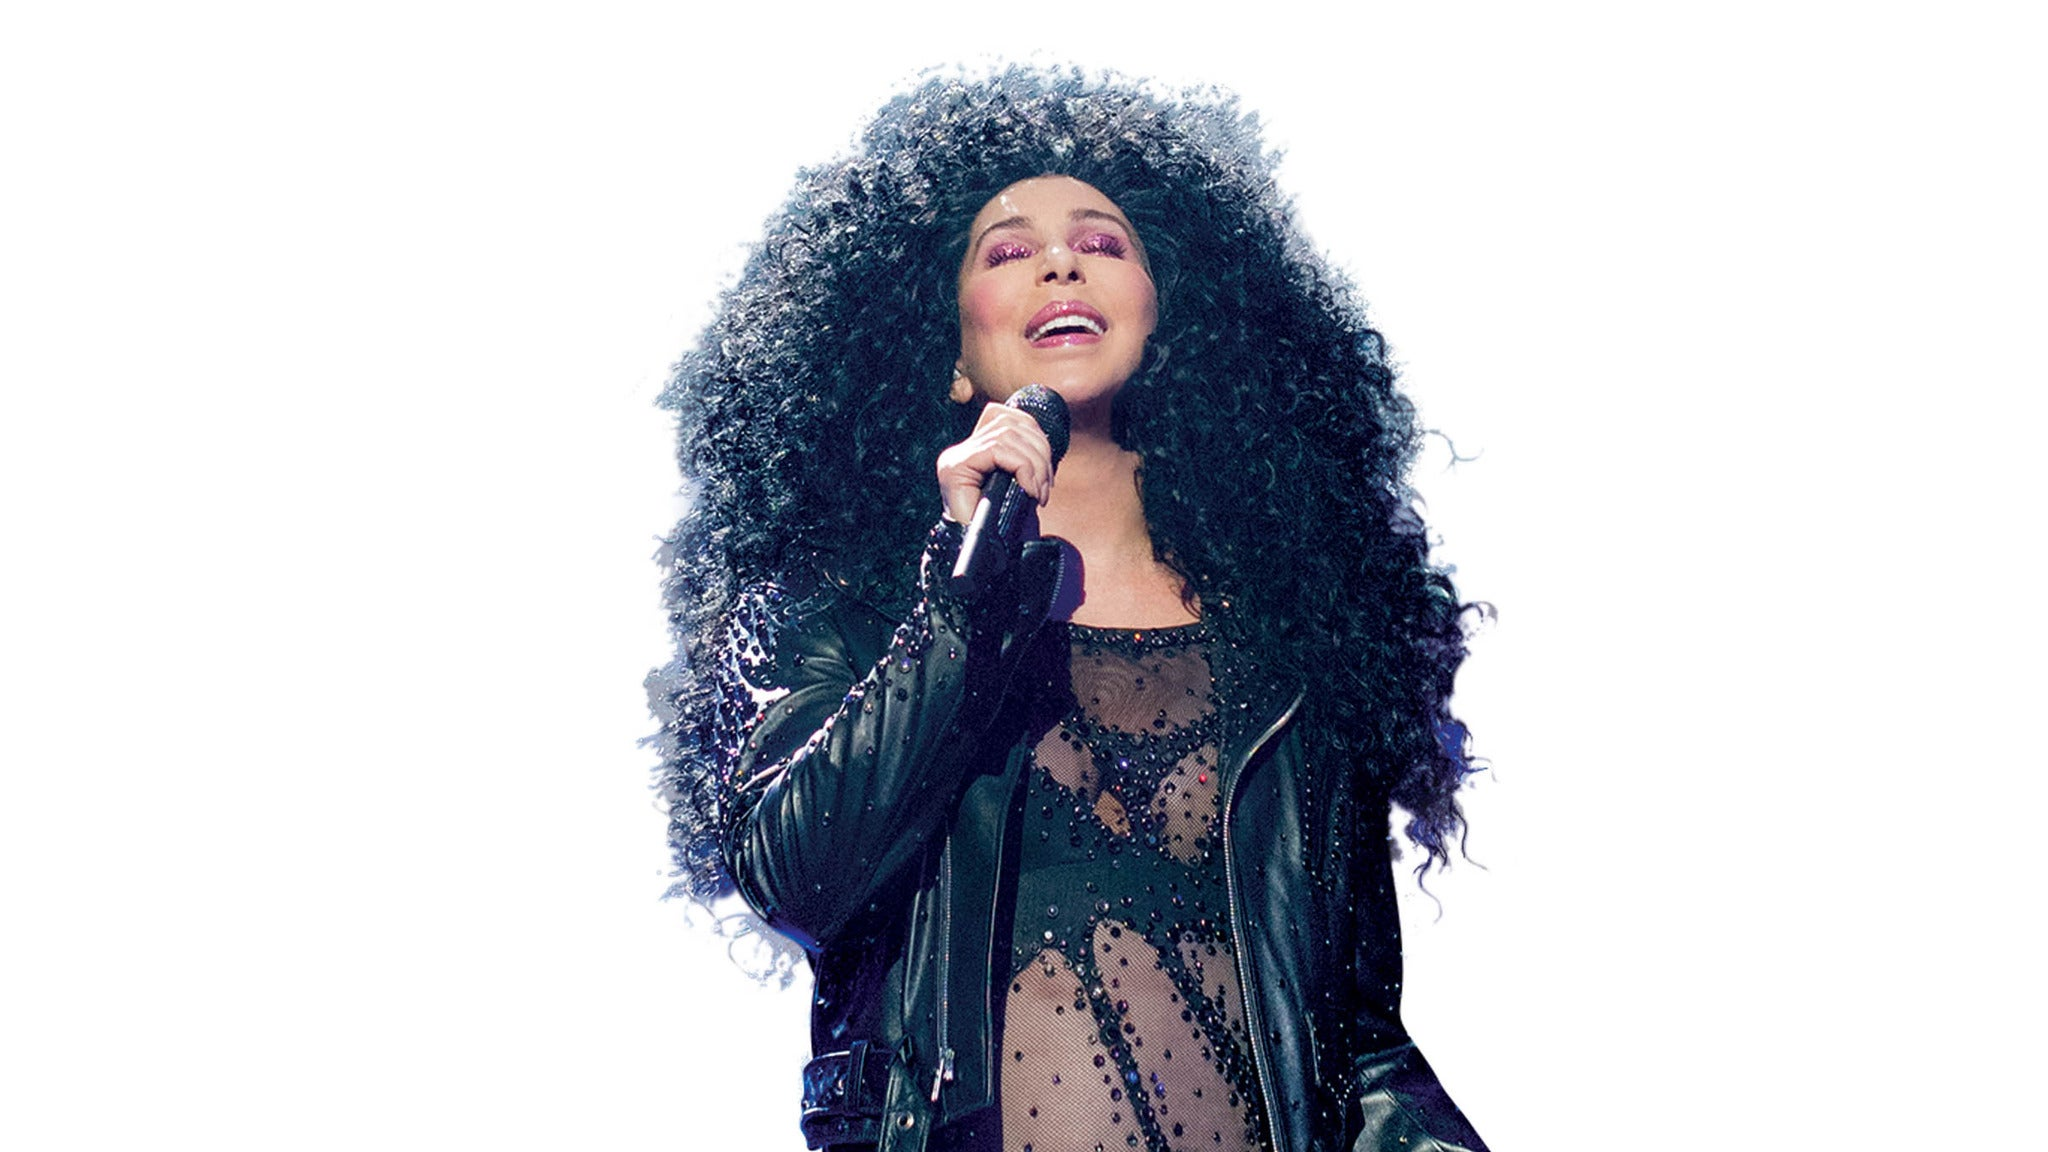 Cher at Borgata Event Center - Atlantic City, NJ 08401